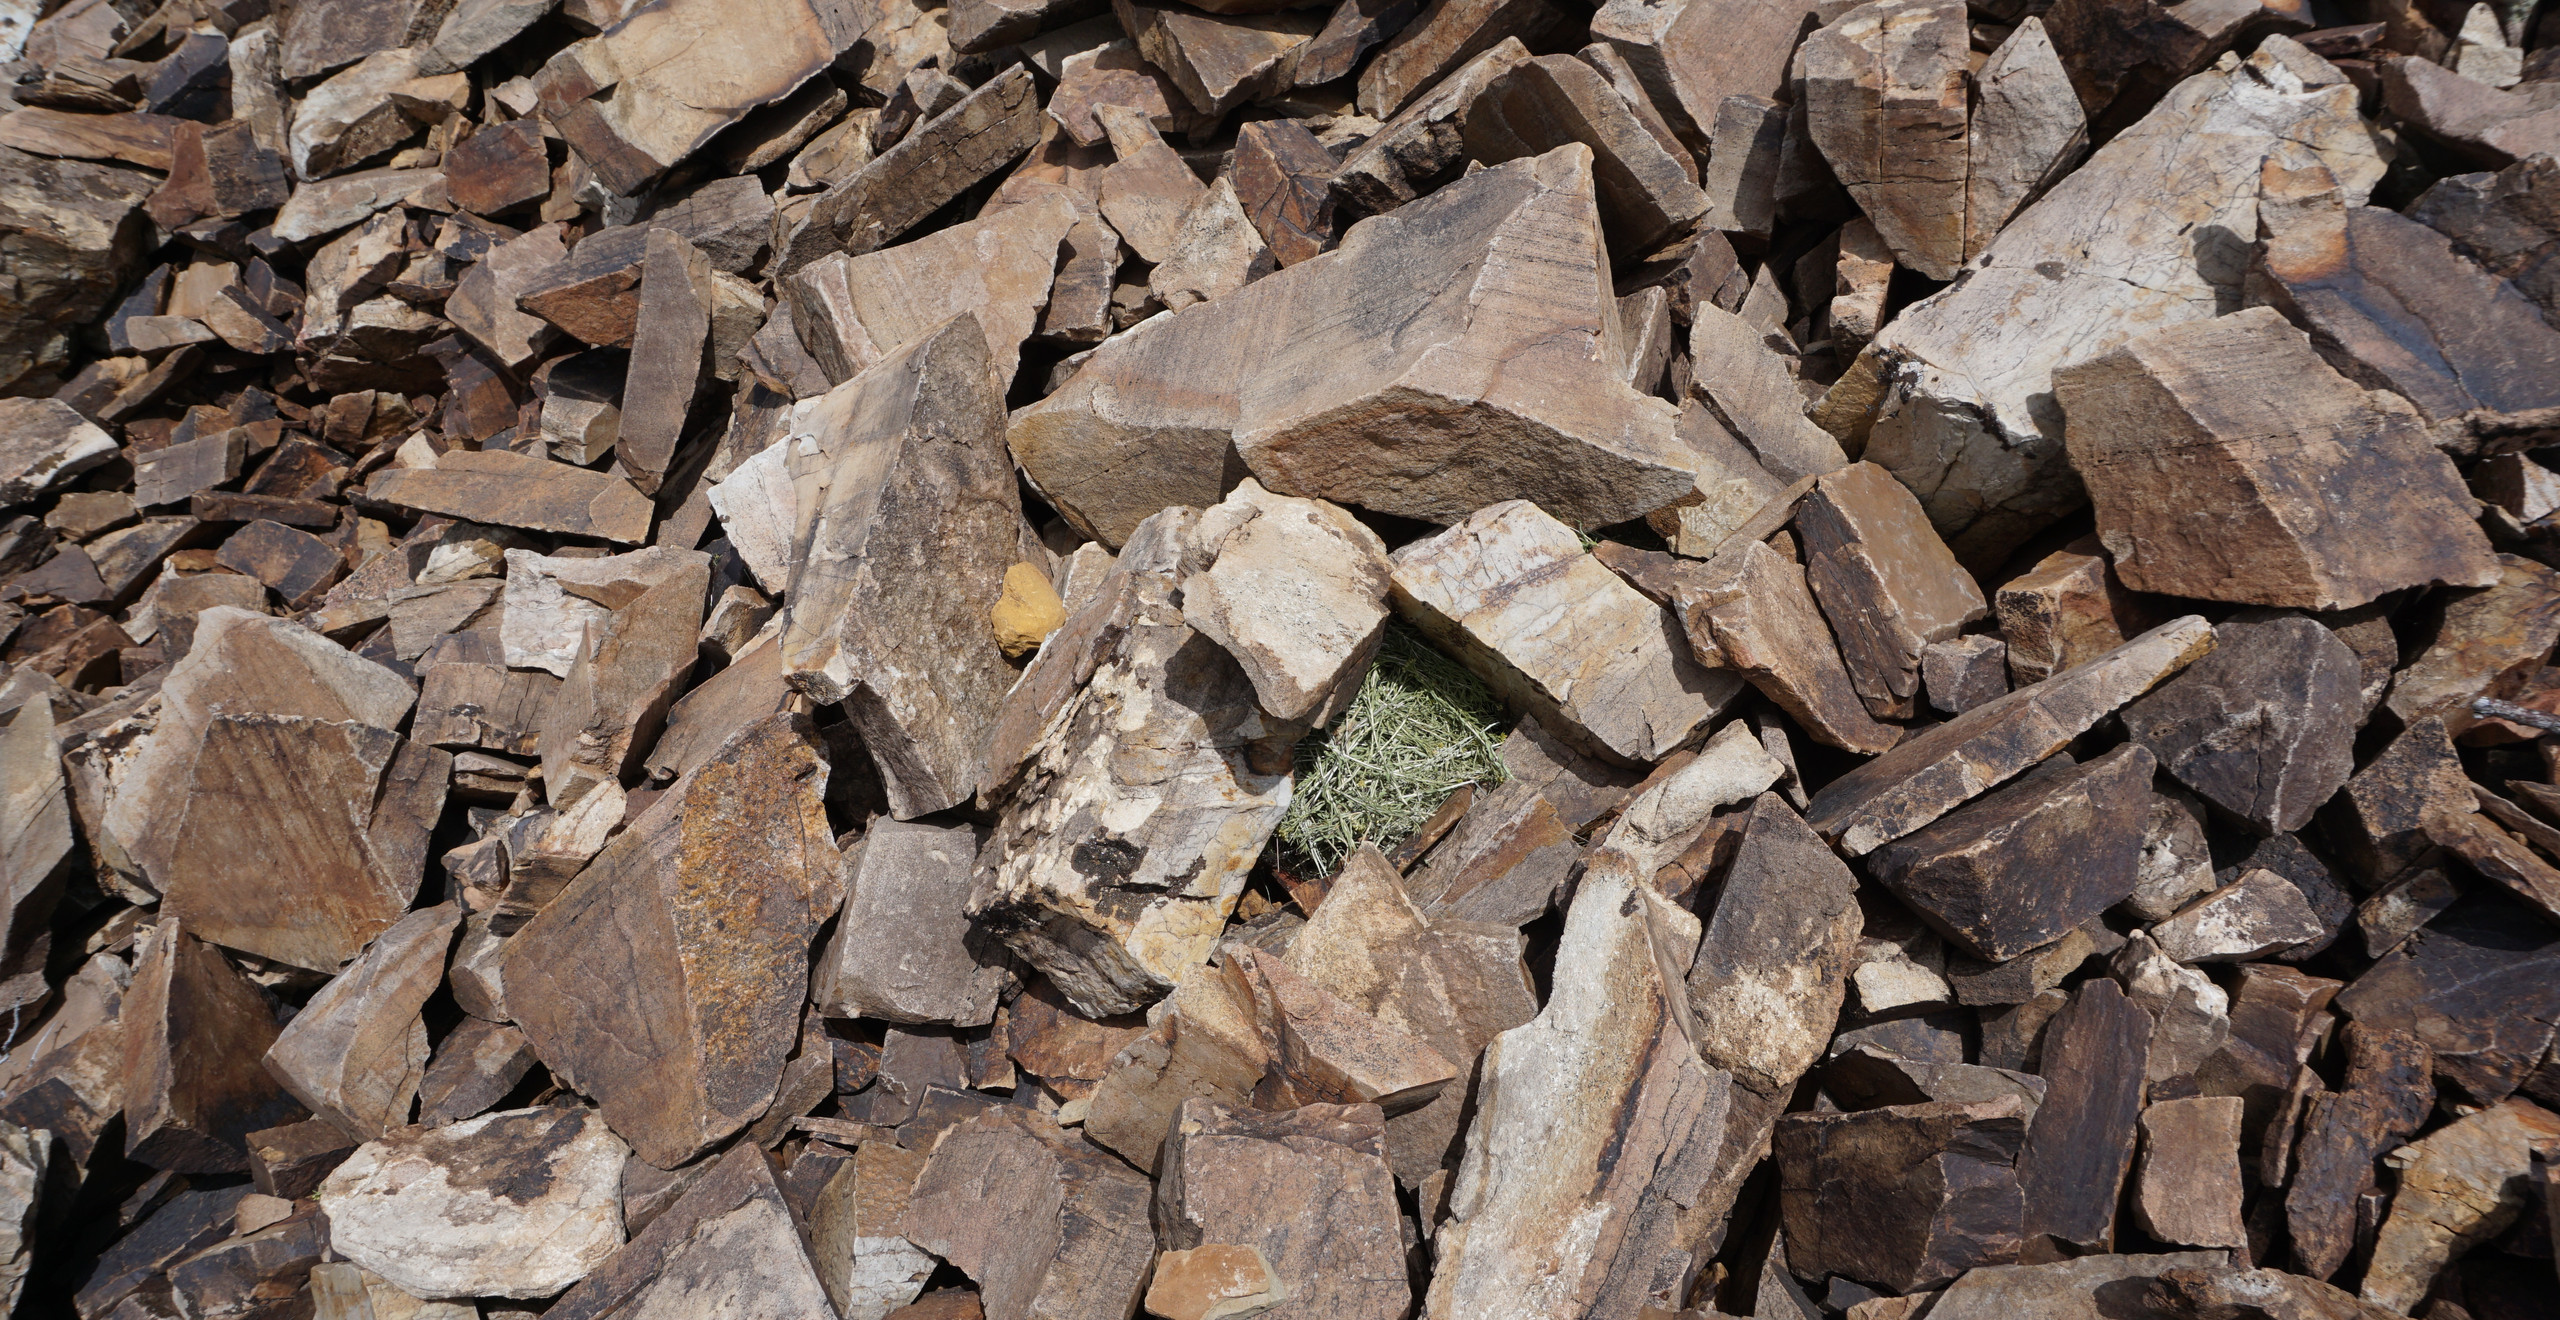 A fresh pika hay pile near the White Mountains visitor center